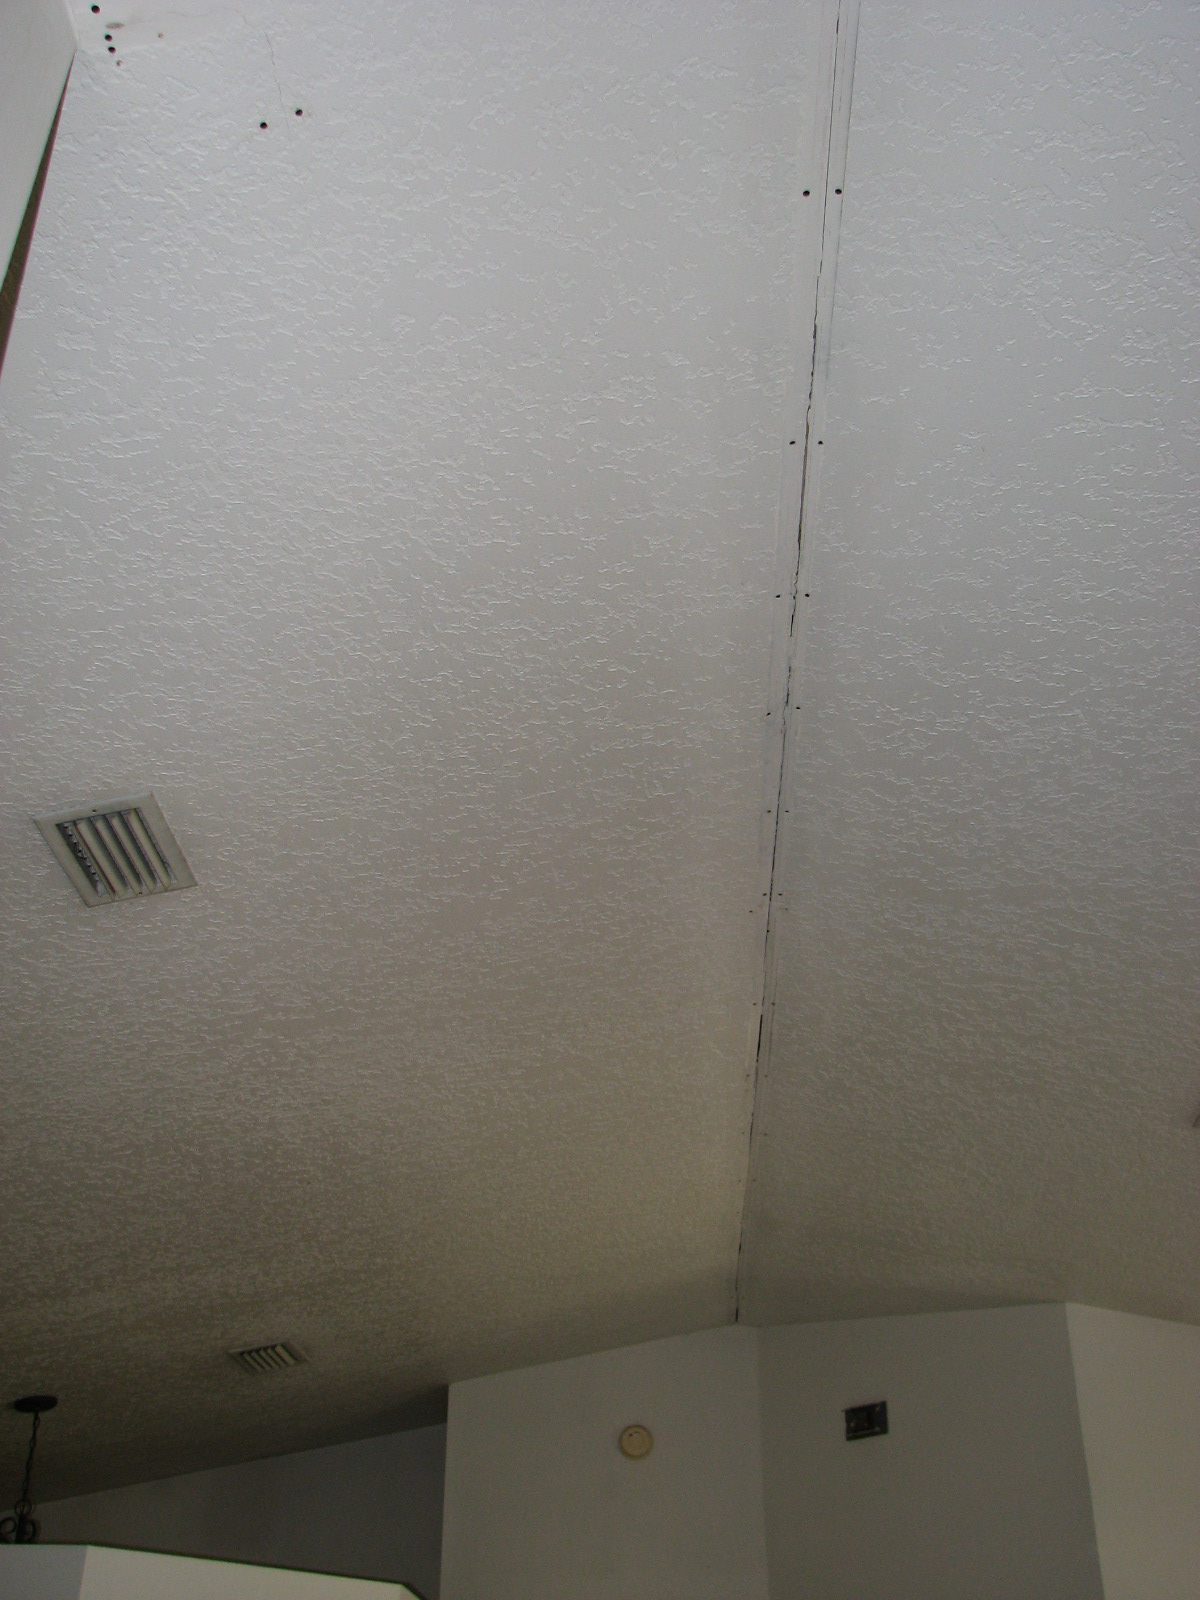 Vaulted Ceiling Tape Joint Repair By Peck Drywall And Painting